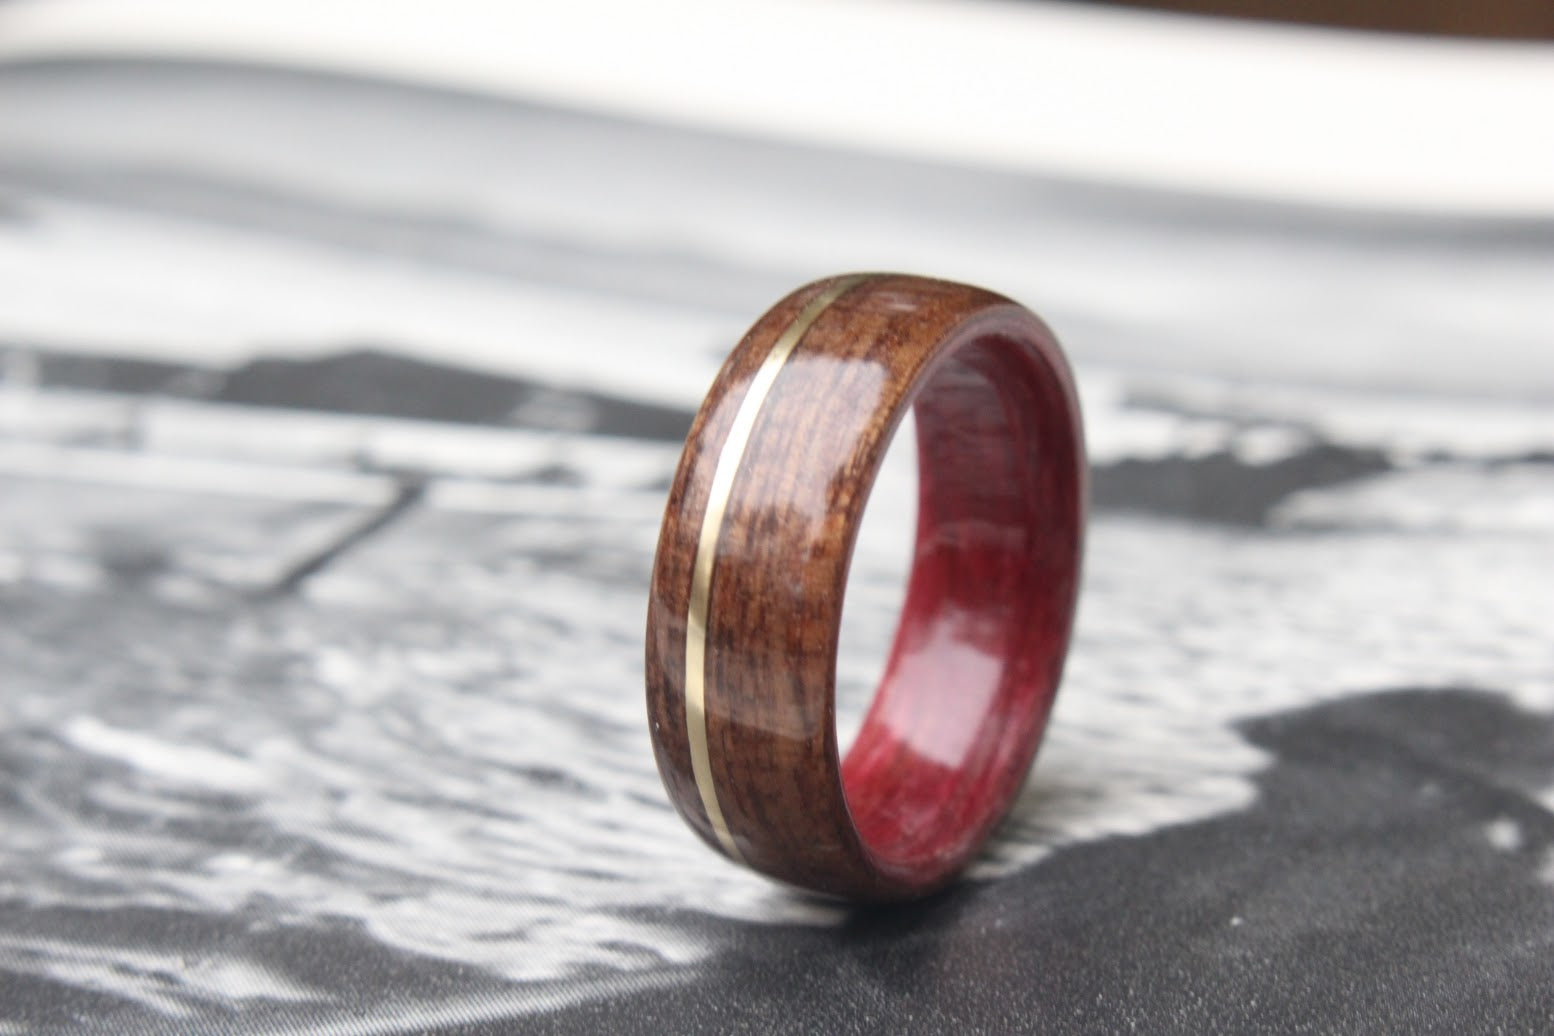 purpleheart wood ring with offset gold inlay